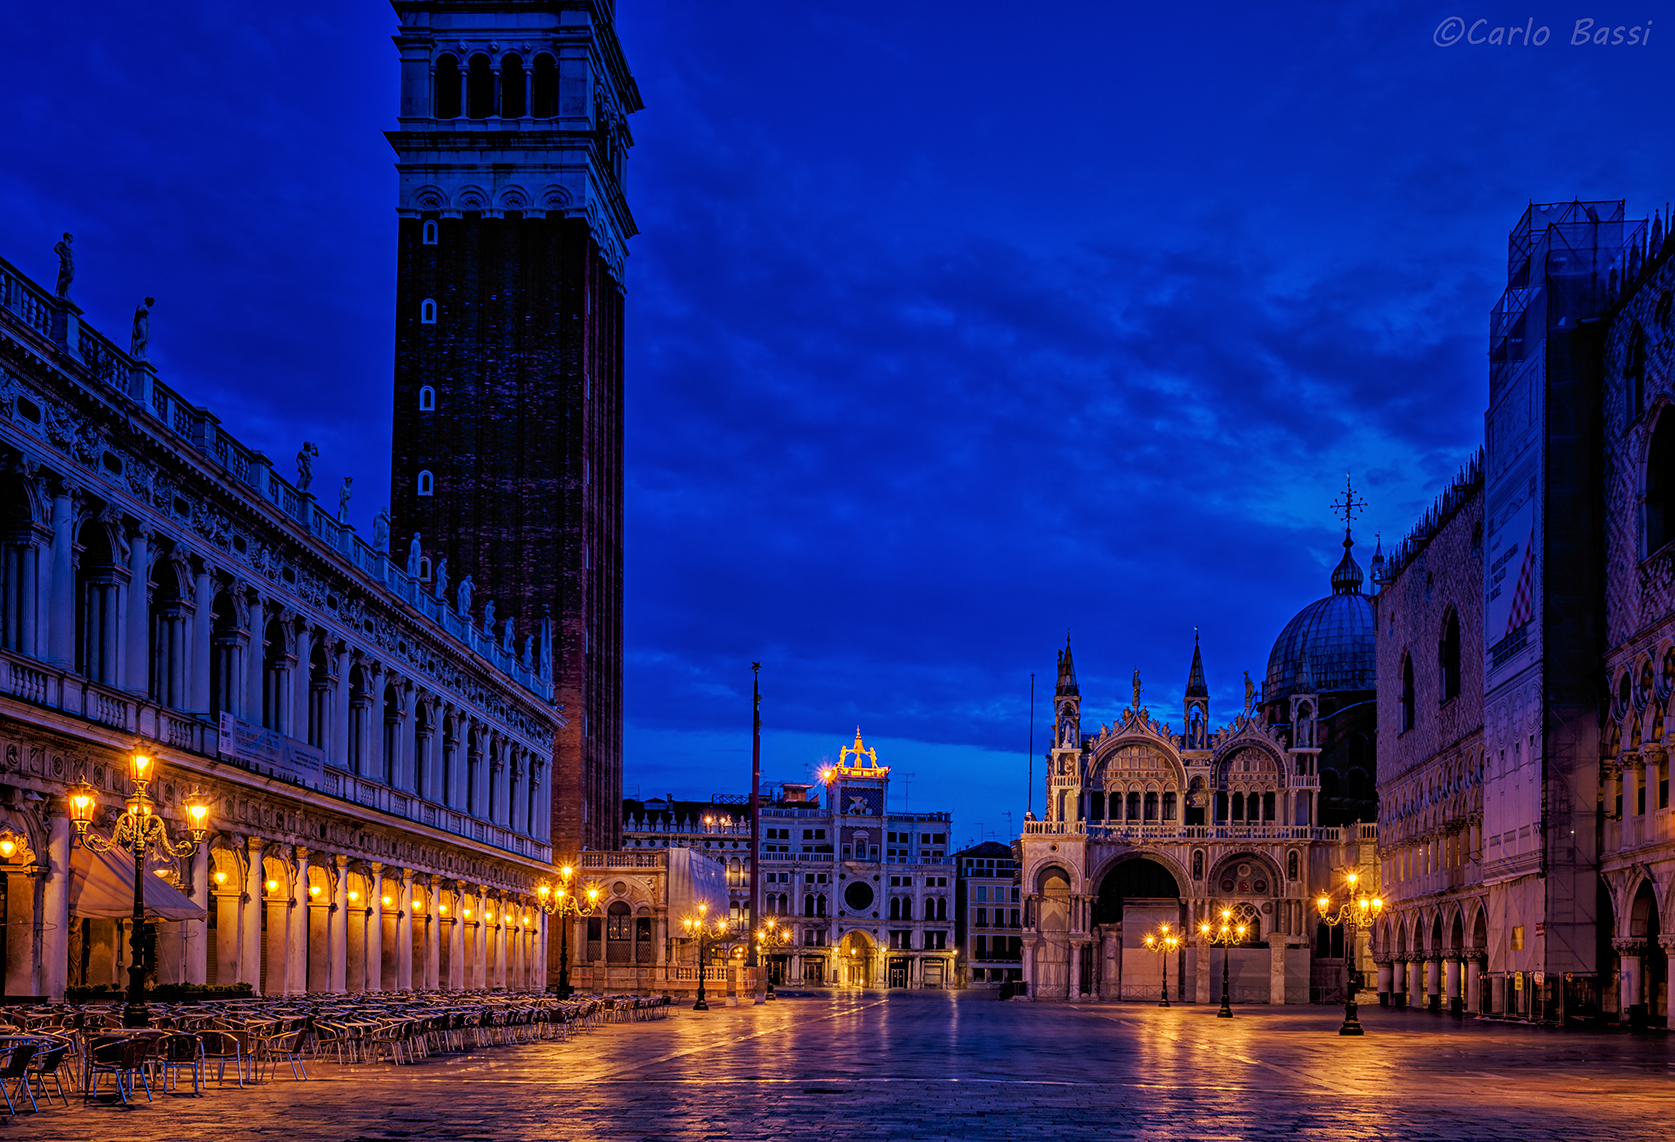 The charm of Venice...